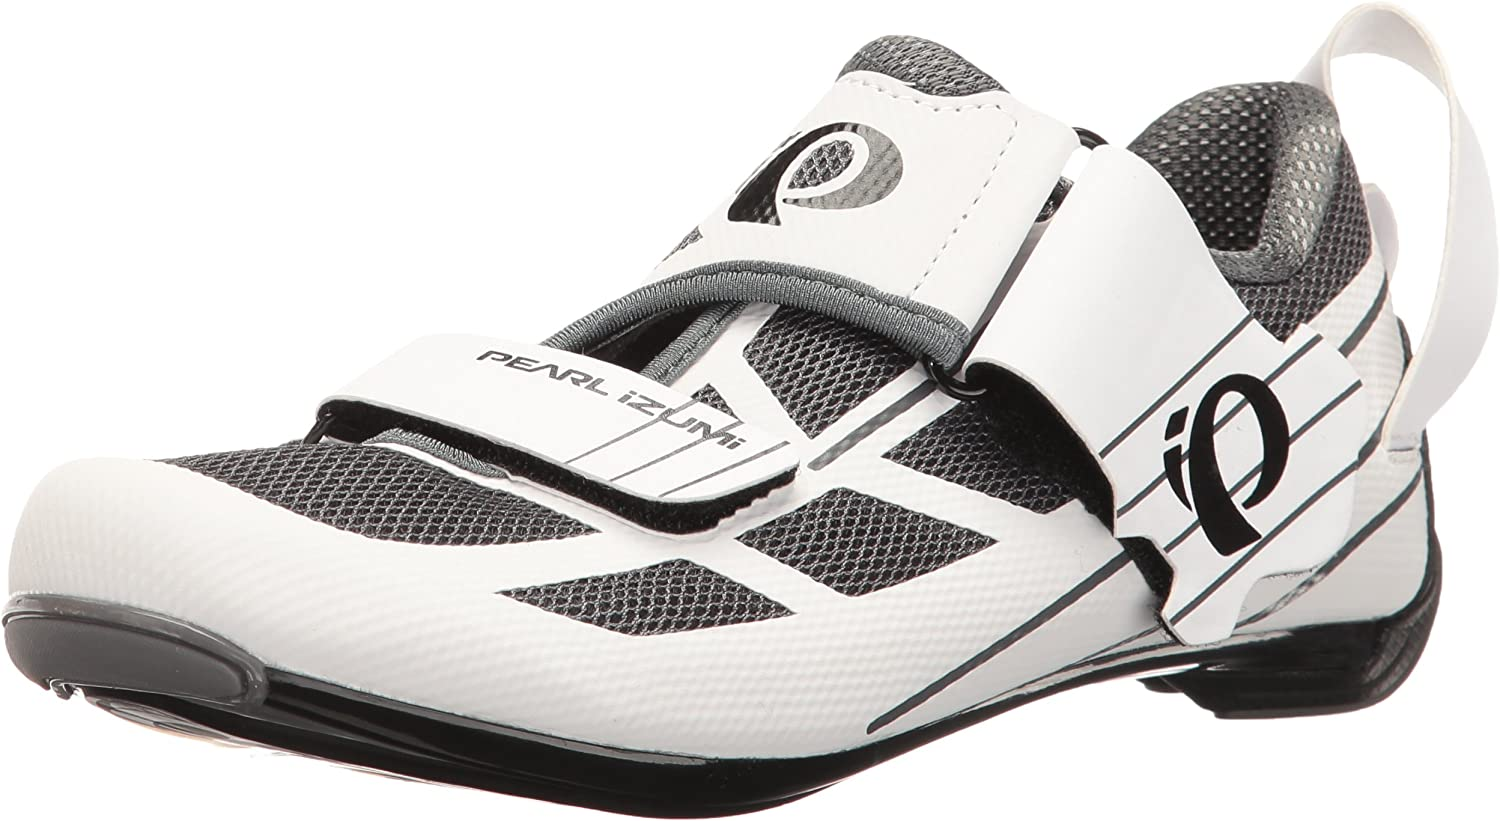 PEARL IZUMI Women's W TRI Fly White Shoe Quality inspection Cycling low-pricing Shad Select V6